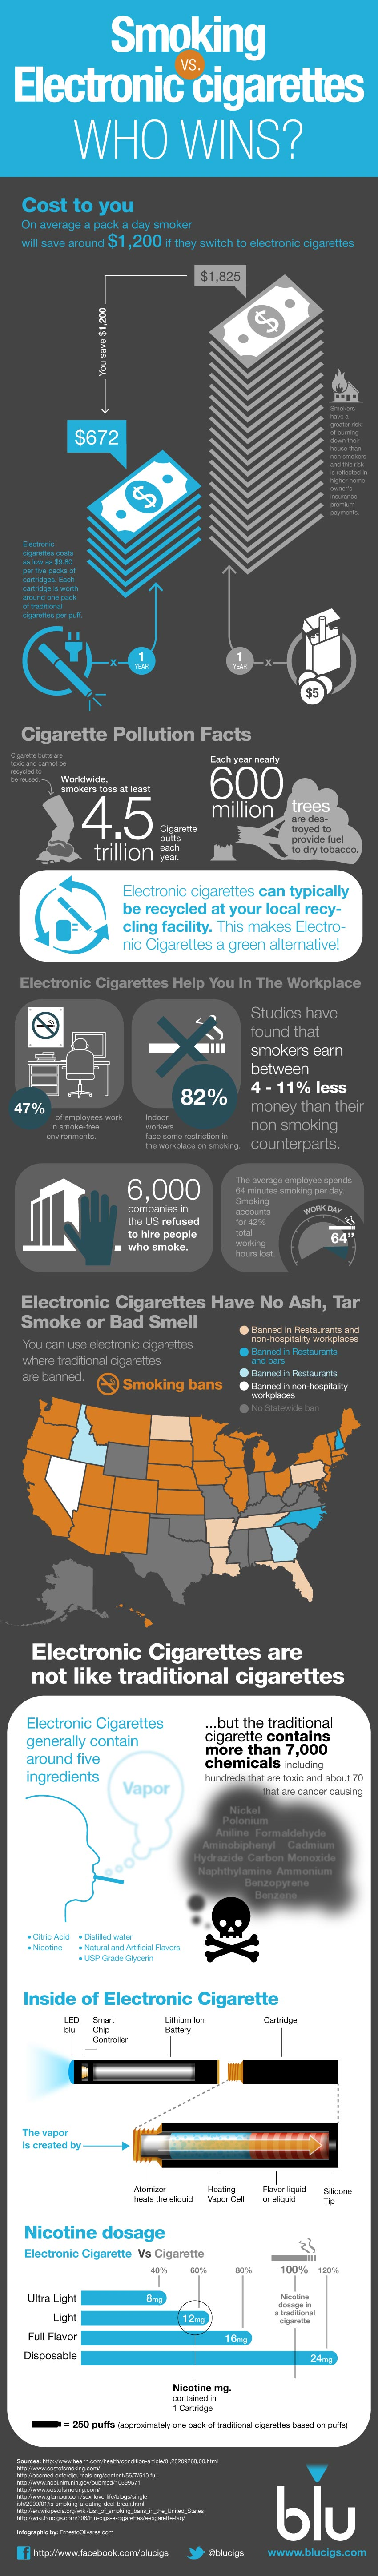 Smoking Vs. Electronic Cigarettes: Who Wins?